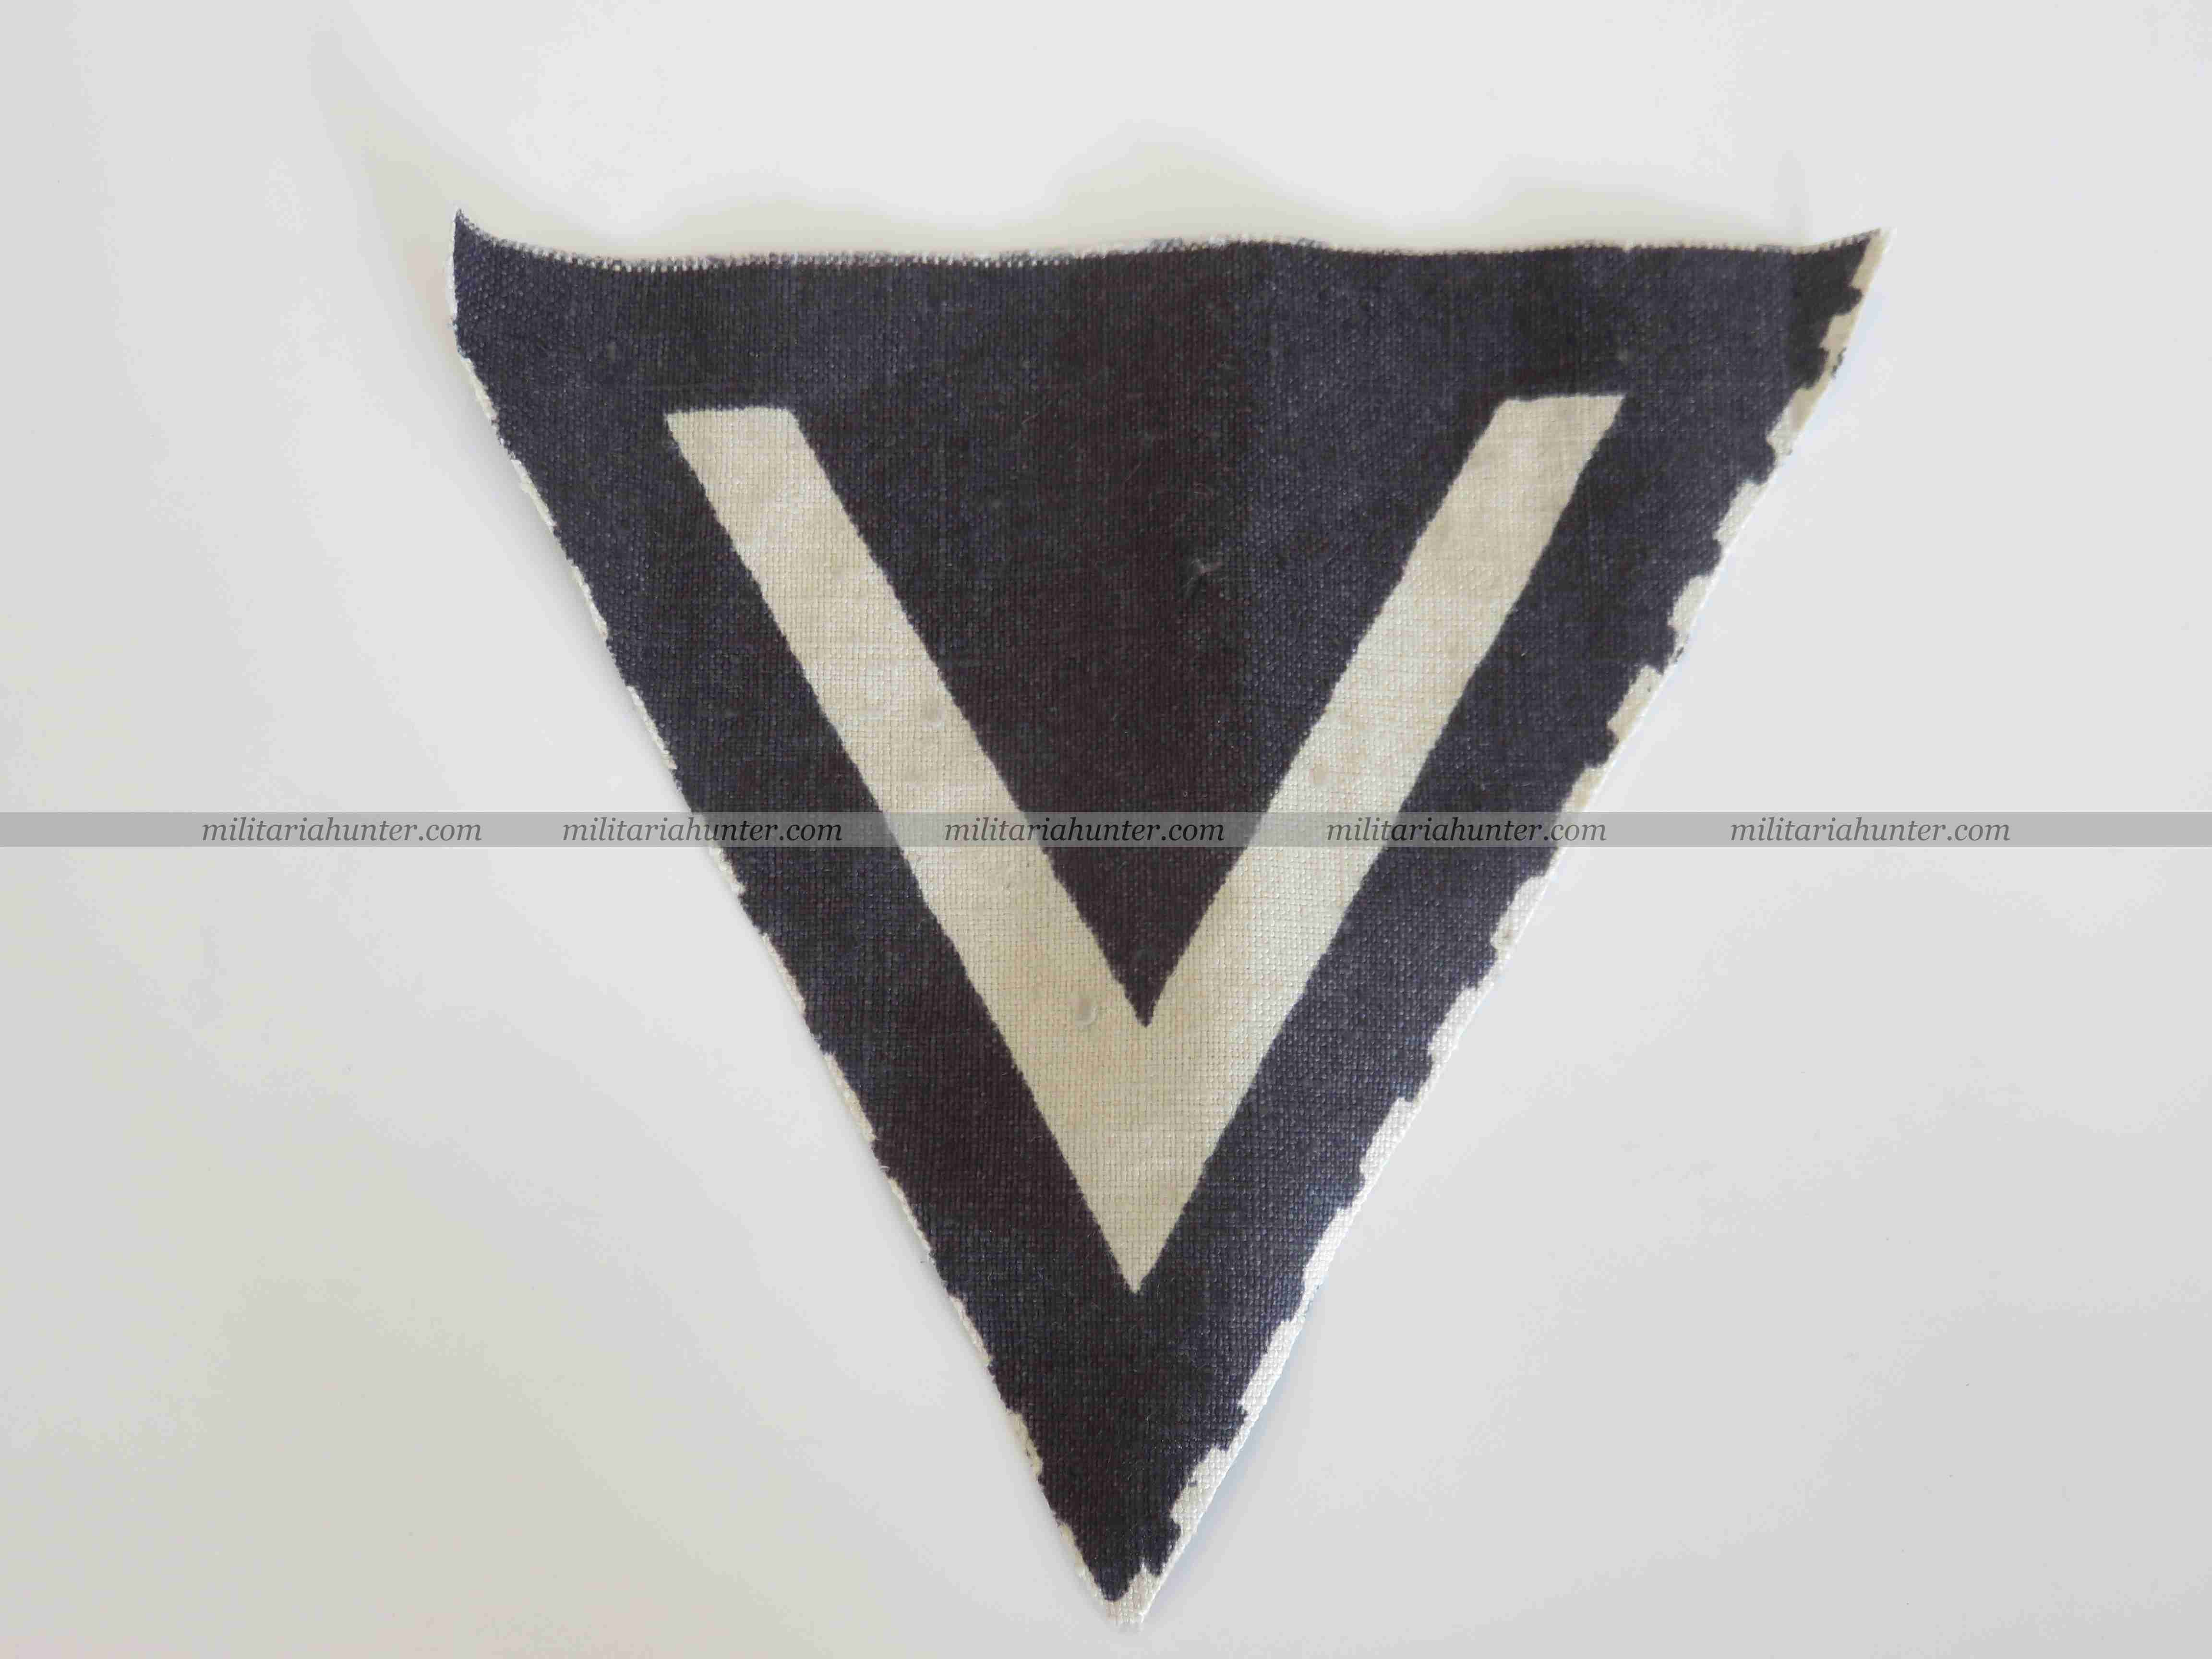 militaria : ww2 WSS or  Panzertruppen late war printed rank chevron